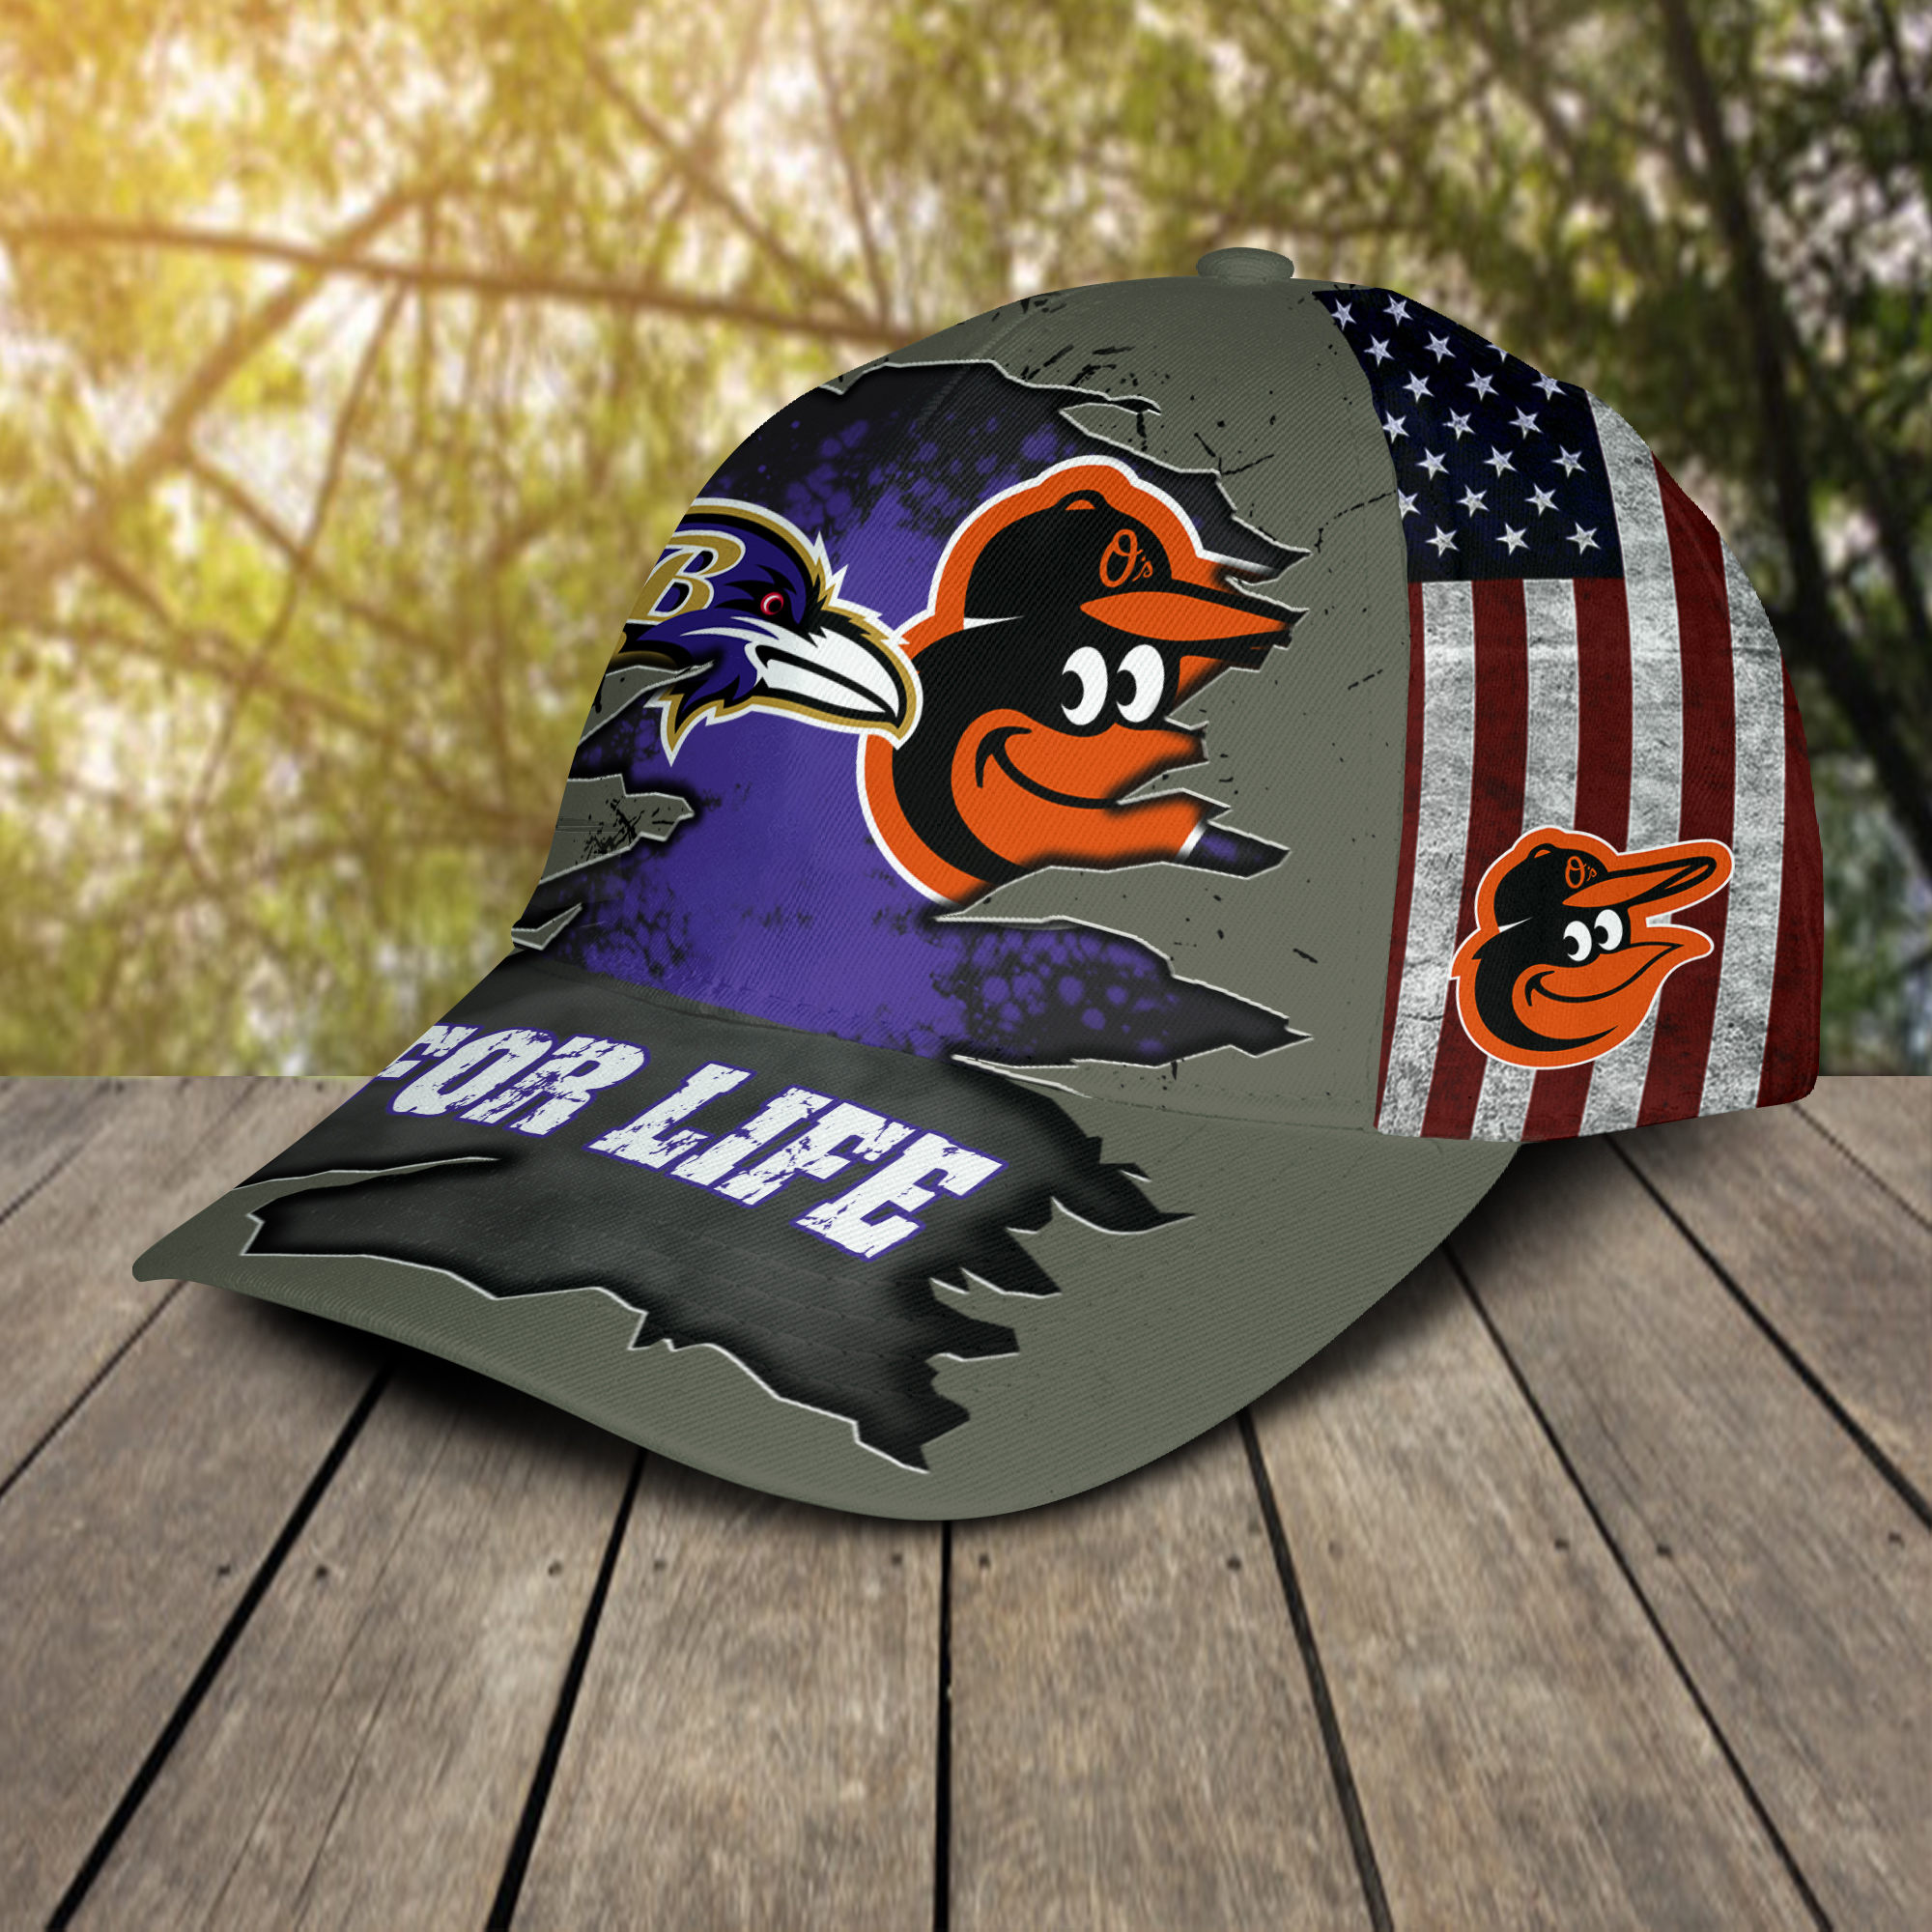 Baltimore Ravens And Baltimore Orioles For Life Hat Cap -2